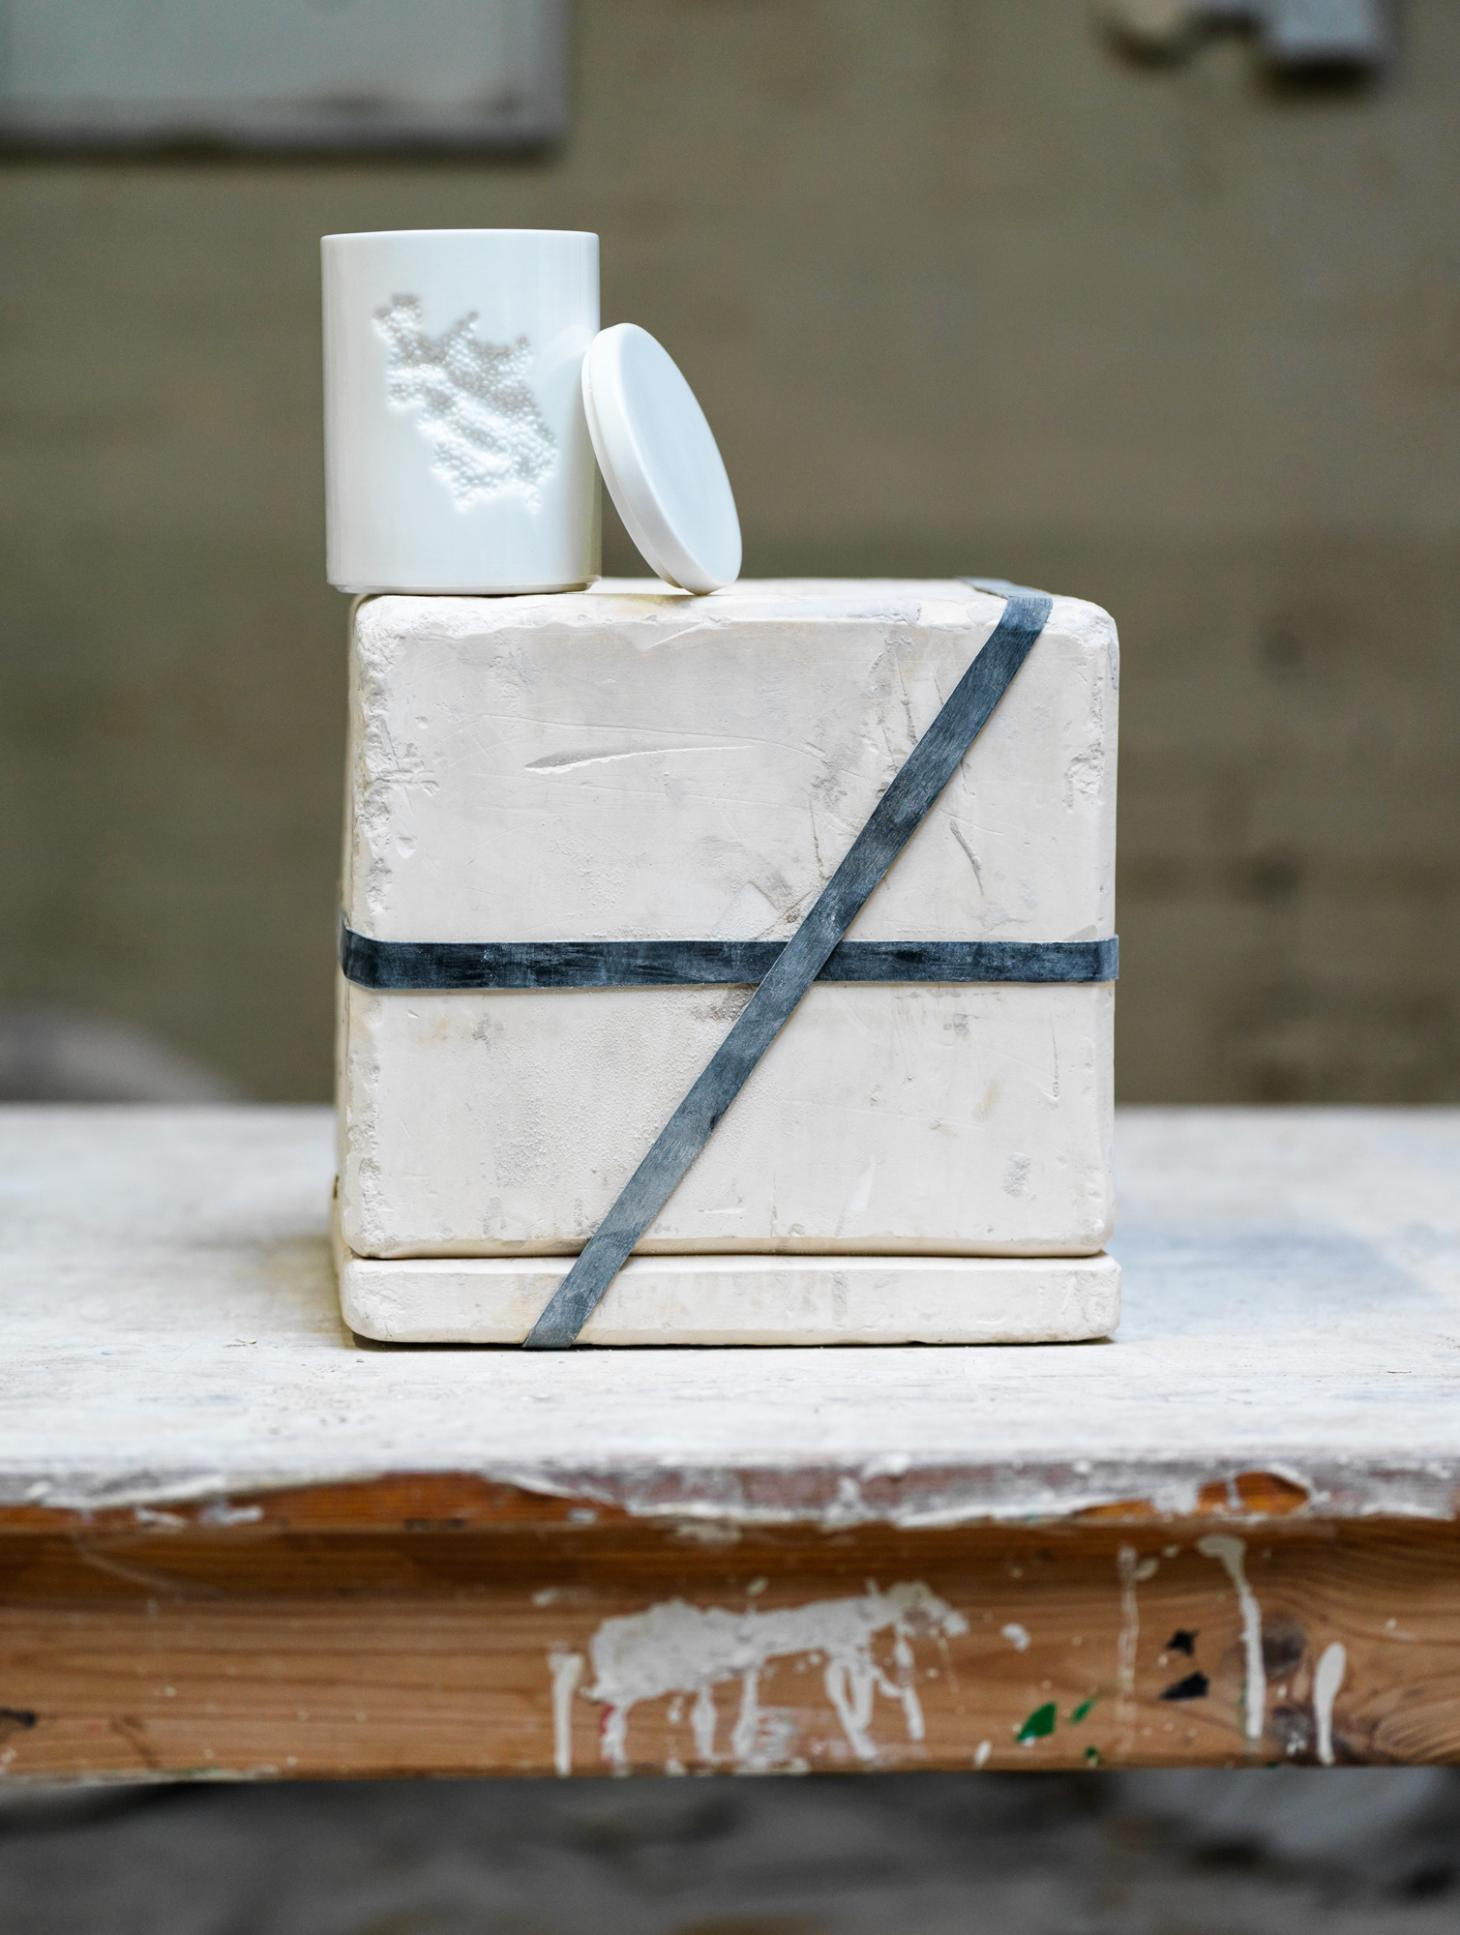 White ceramic vessel by Snarkitecture photographed on its mould in the 1882 factory in Stoke on Trent